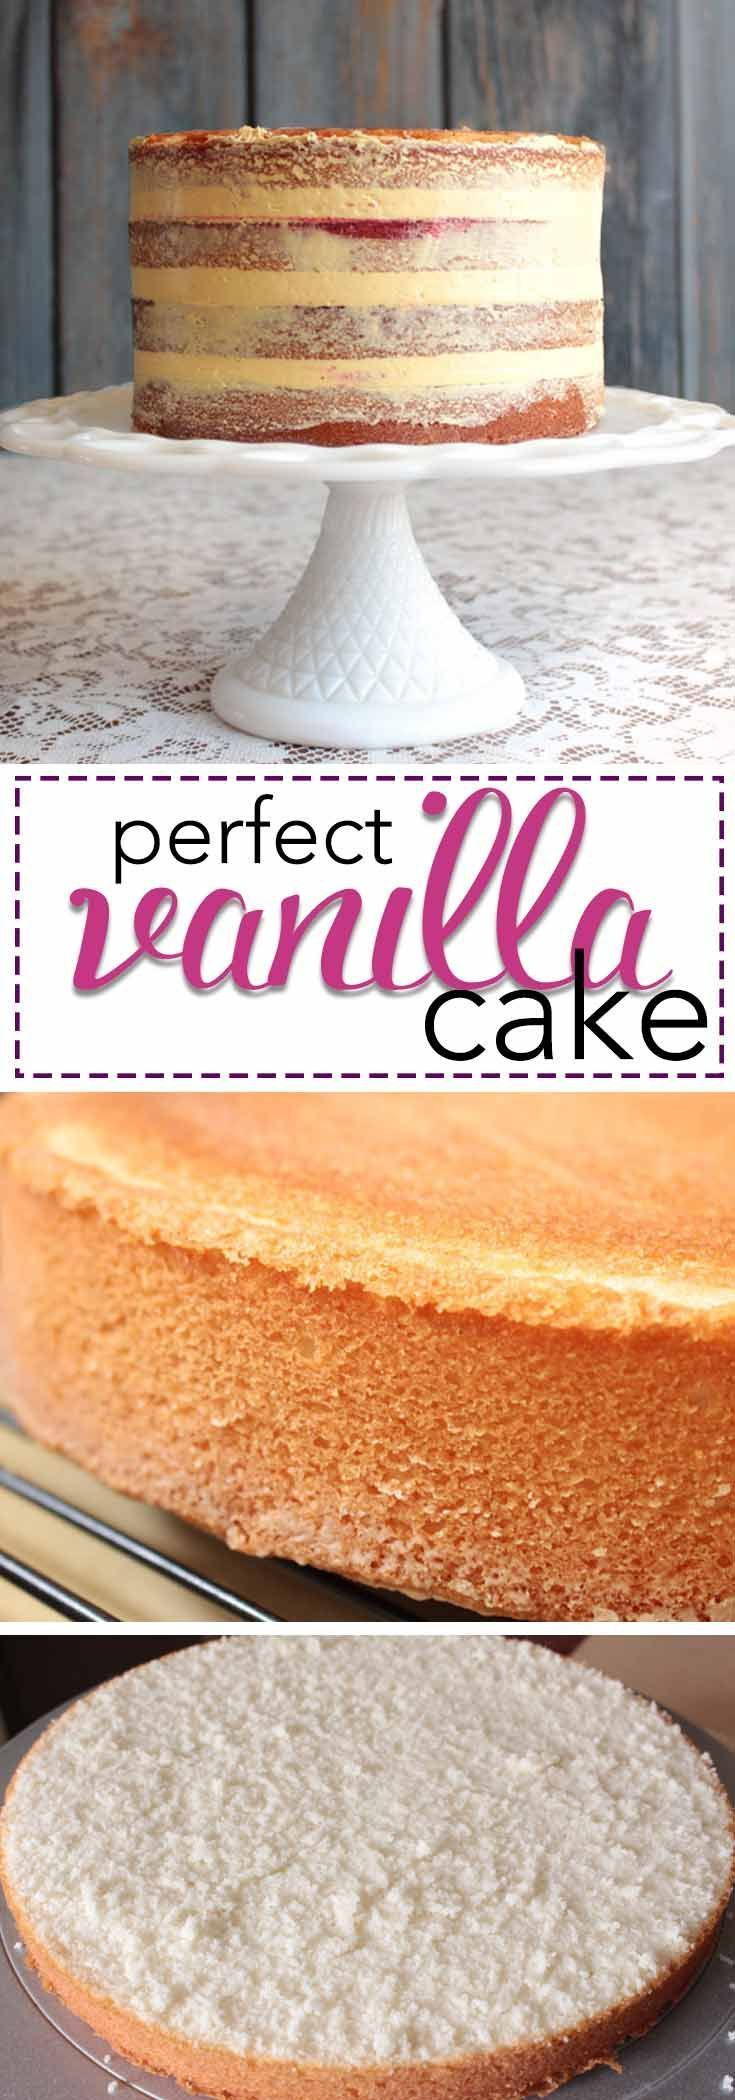 The Perfect Vanilla Cake Recipe. This amazing vanilla cake bakes perfectly every time! Try the recipe that has won over thousands of bakers around the globe! via @Kara's Couture Cakes